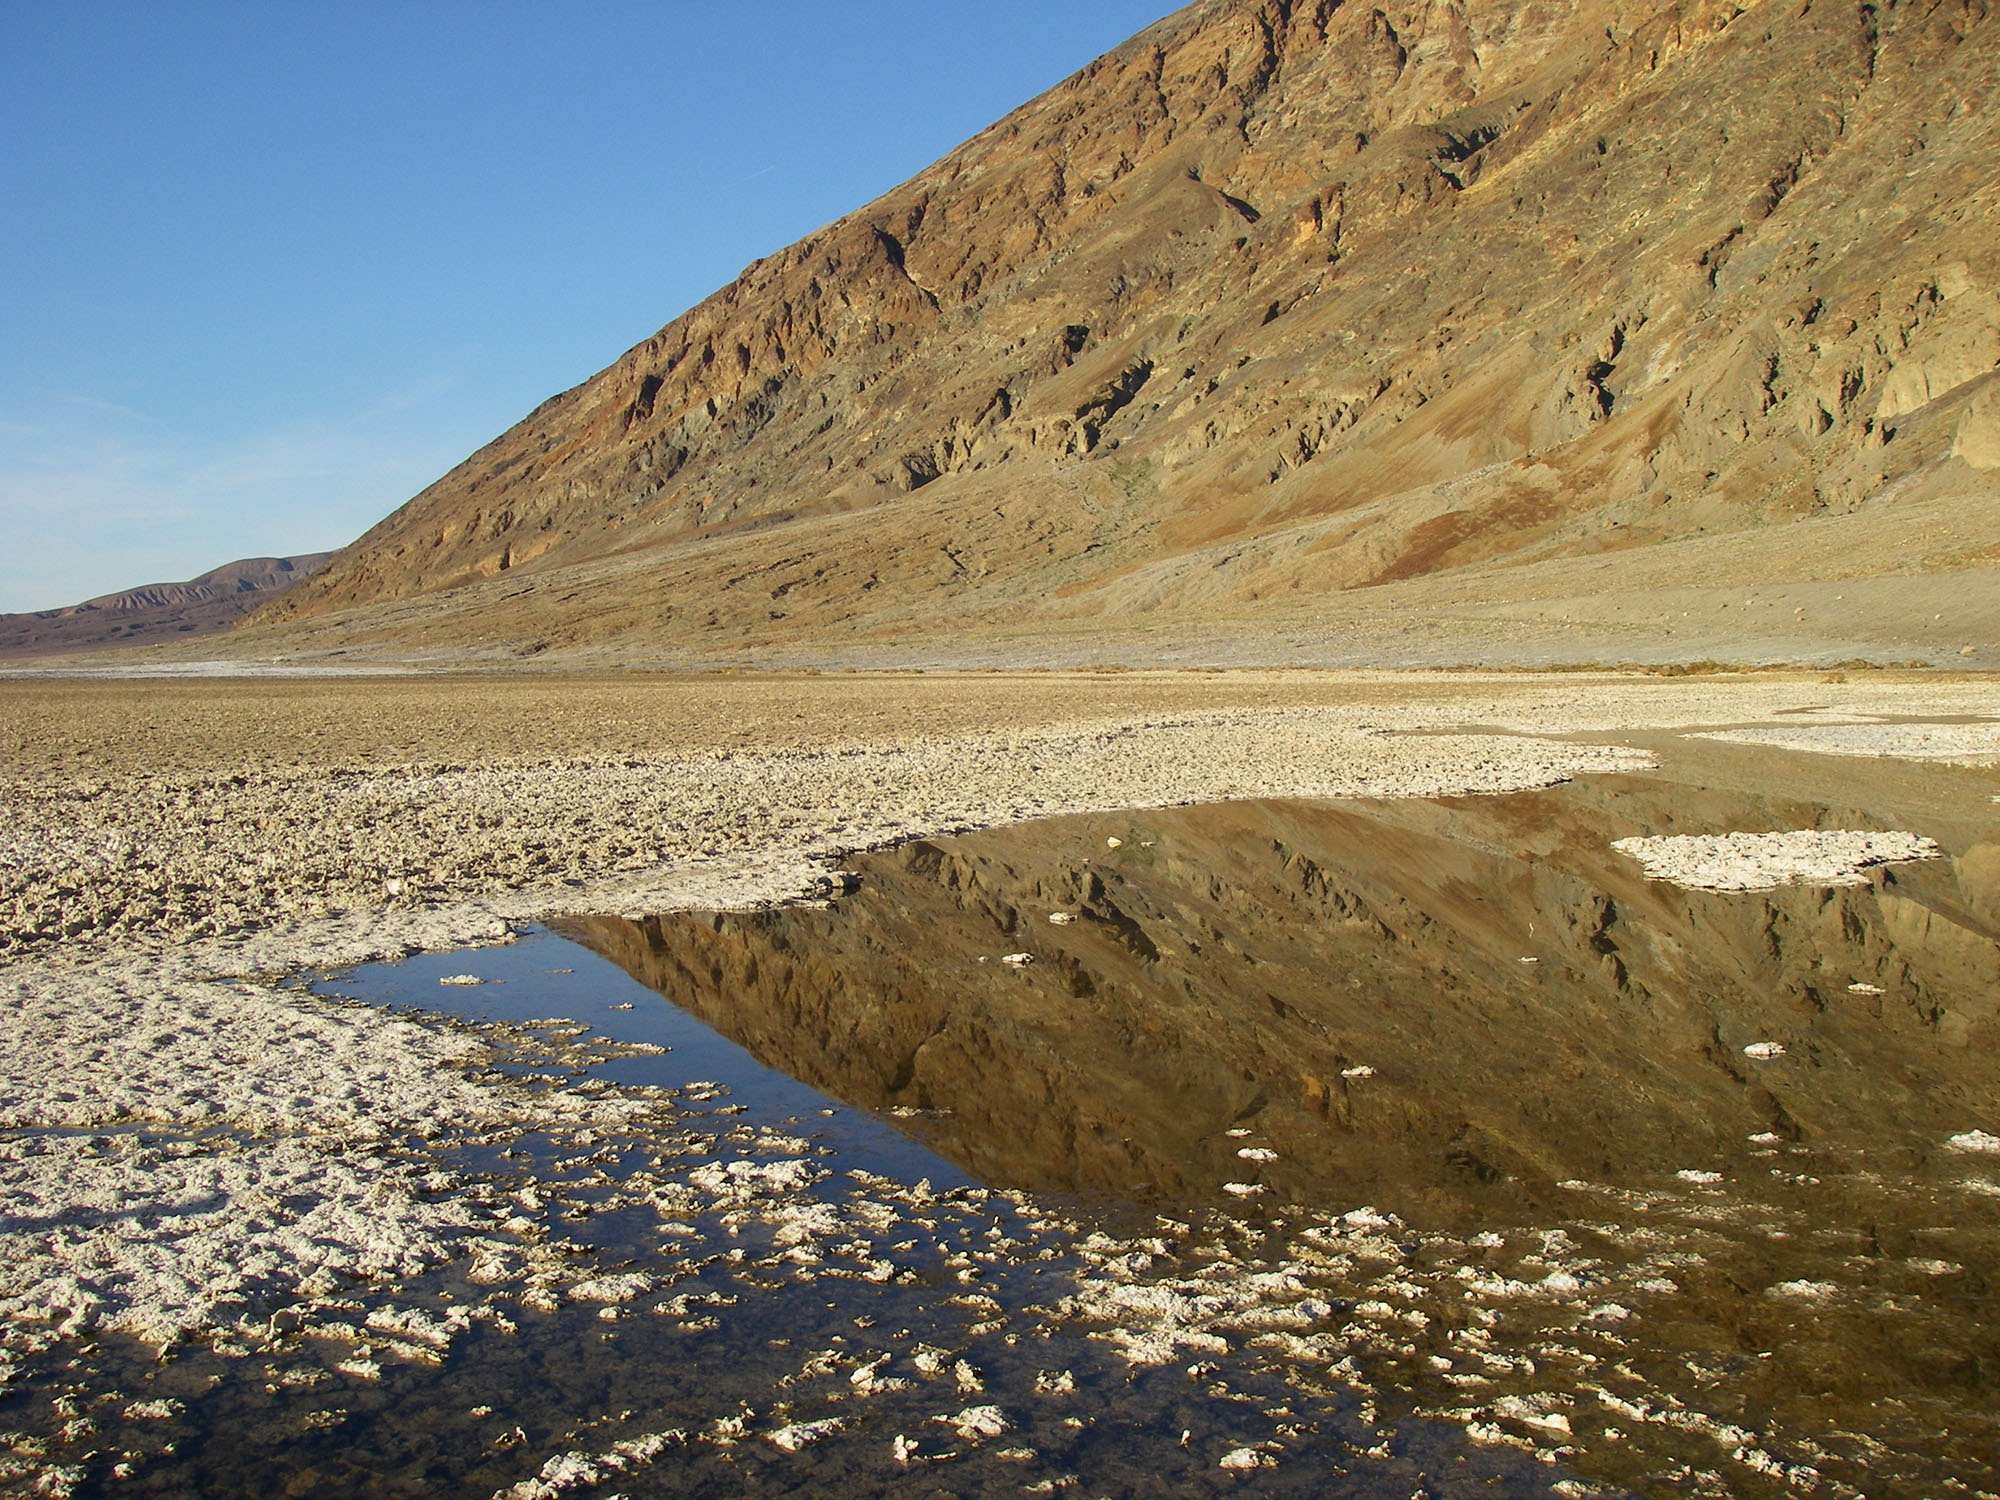 A pool at the edge of the Badwater Basin salt flats.  (Image by Emily Benson)